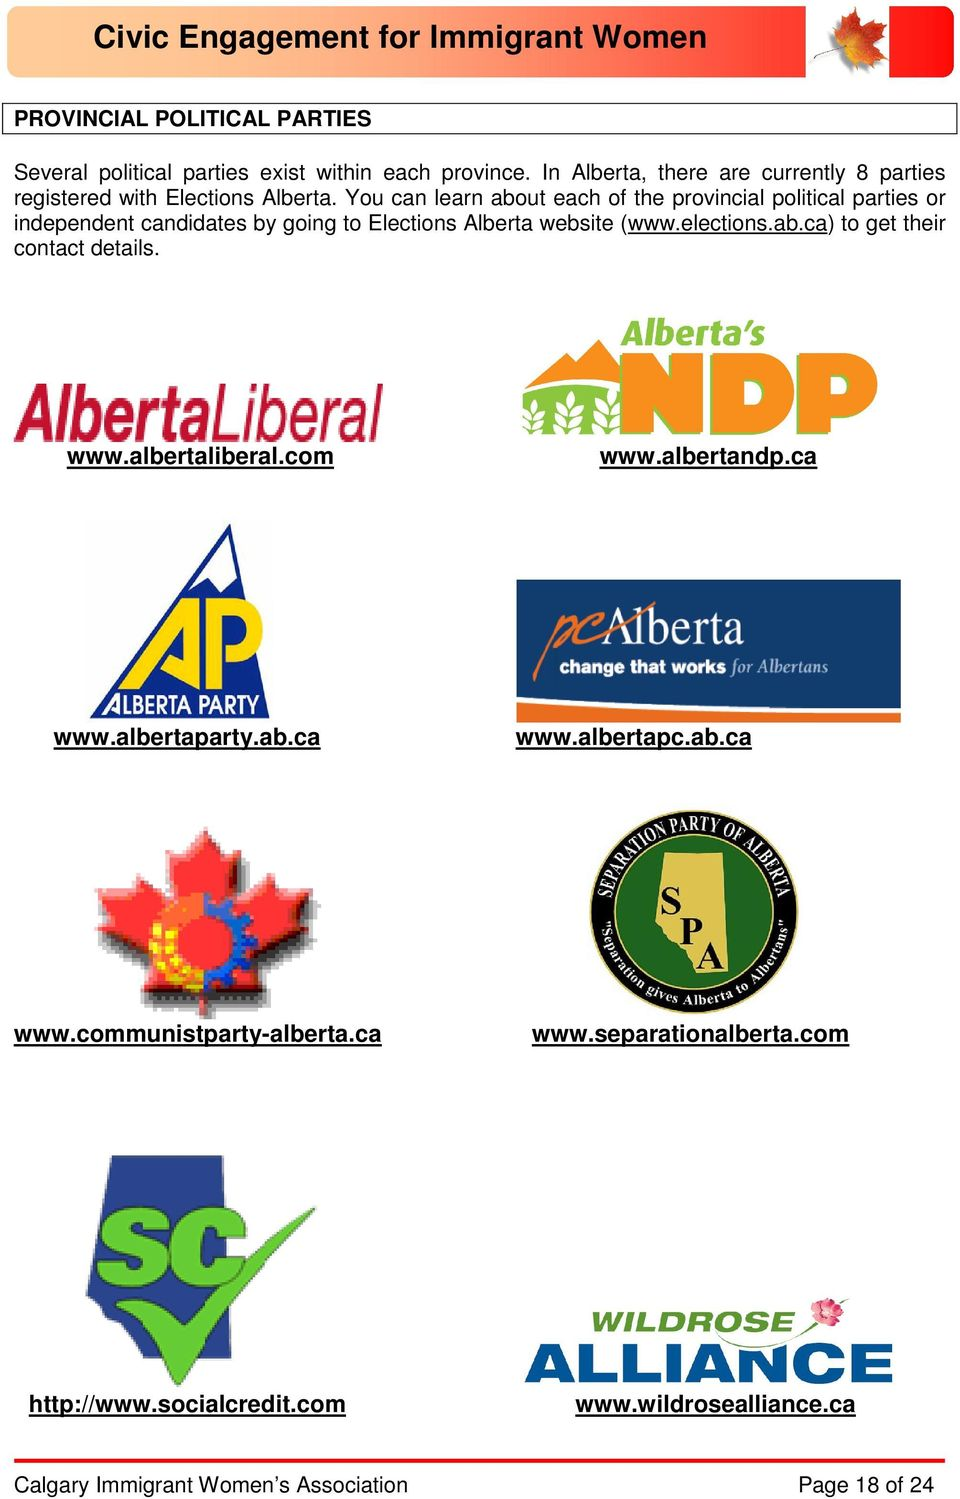 You can learn about each of the provincial political parties or independent candidates by going to Elections Alberta website (www.elections.ab.ca) to get their contact details.